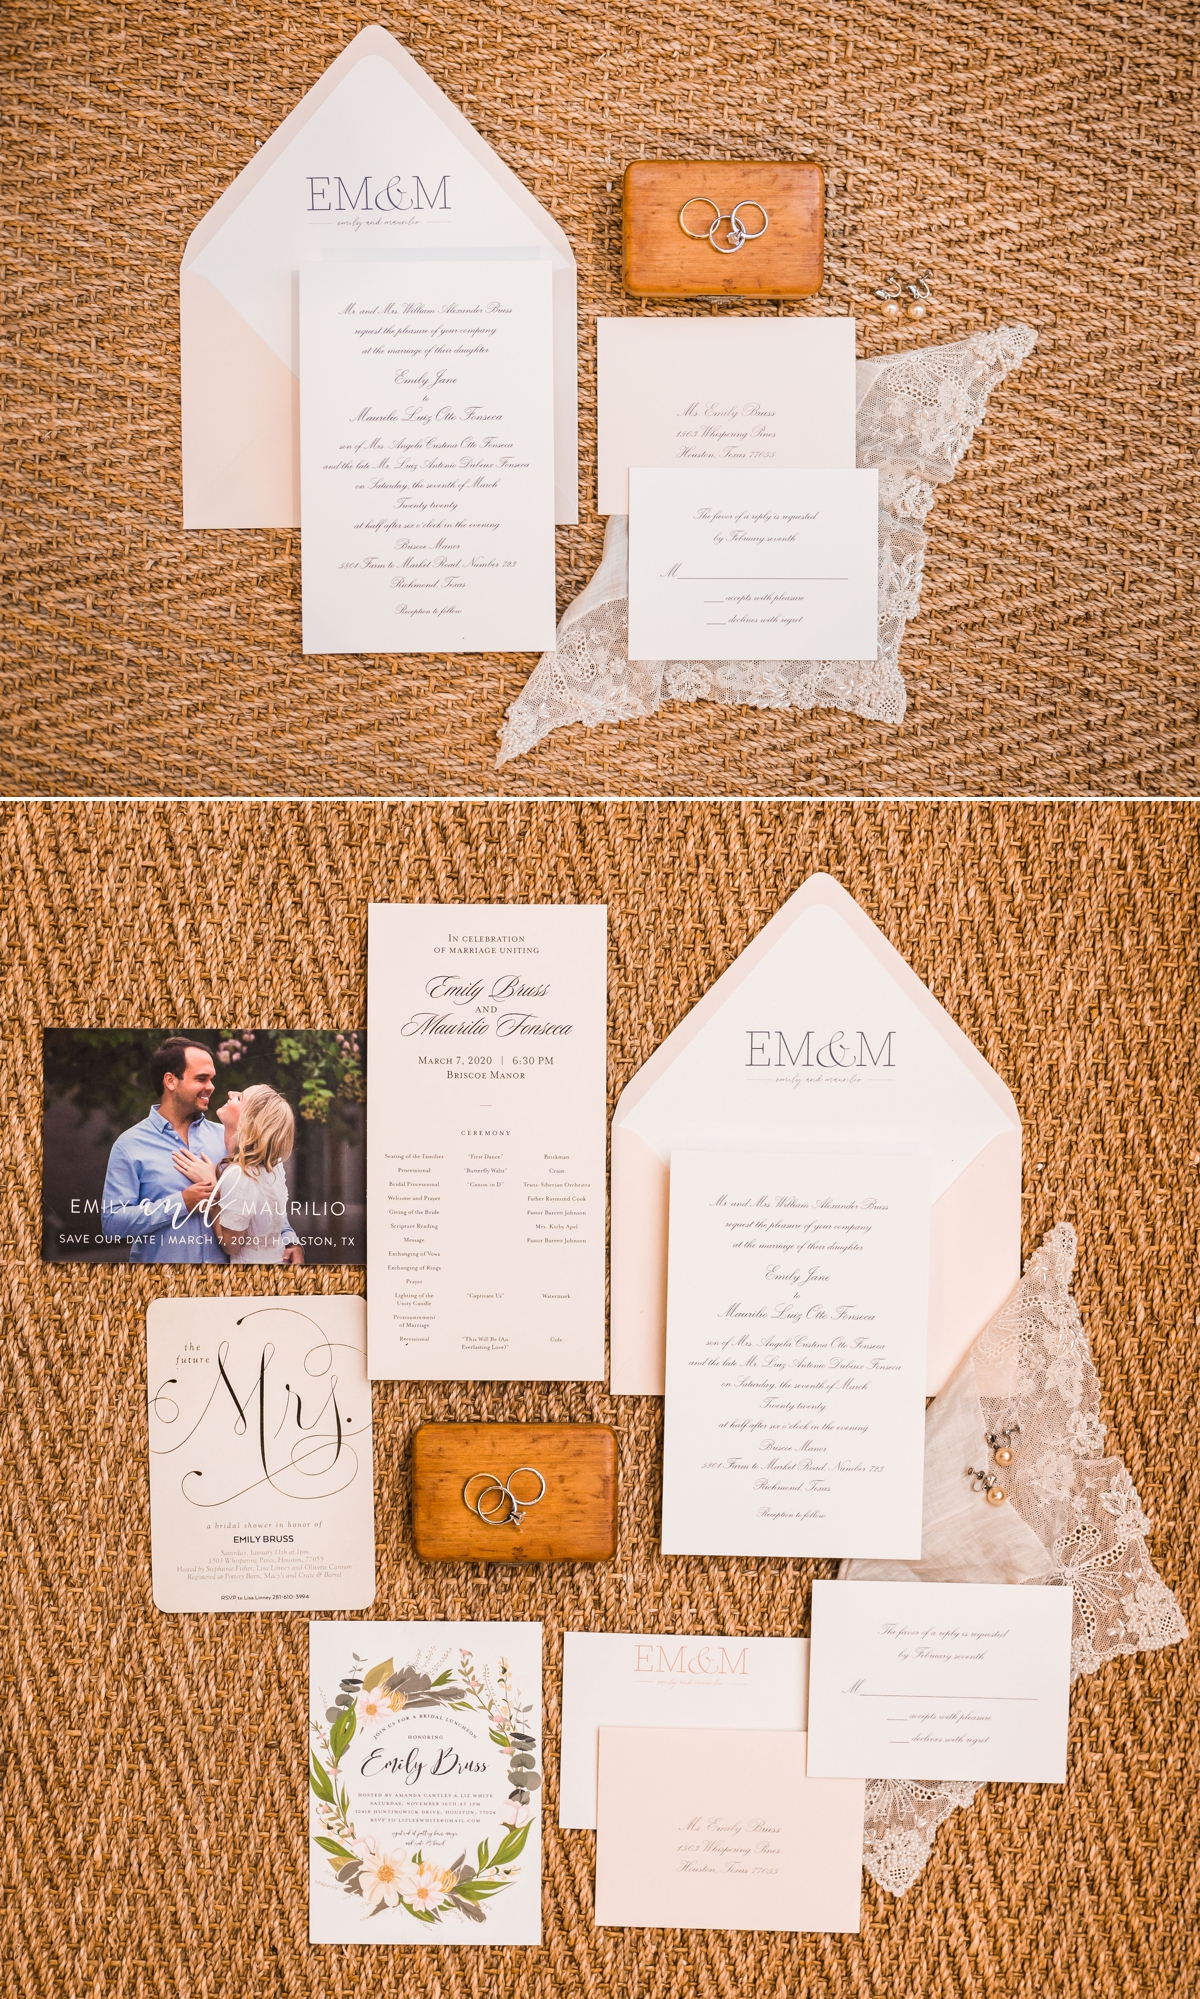 Wedding Invitation Suite Blush and Cream on a Jute Background